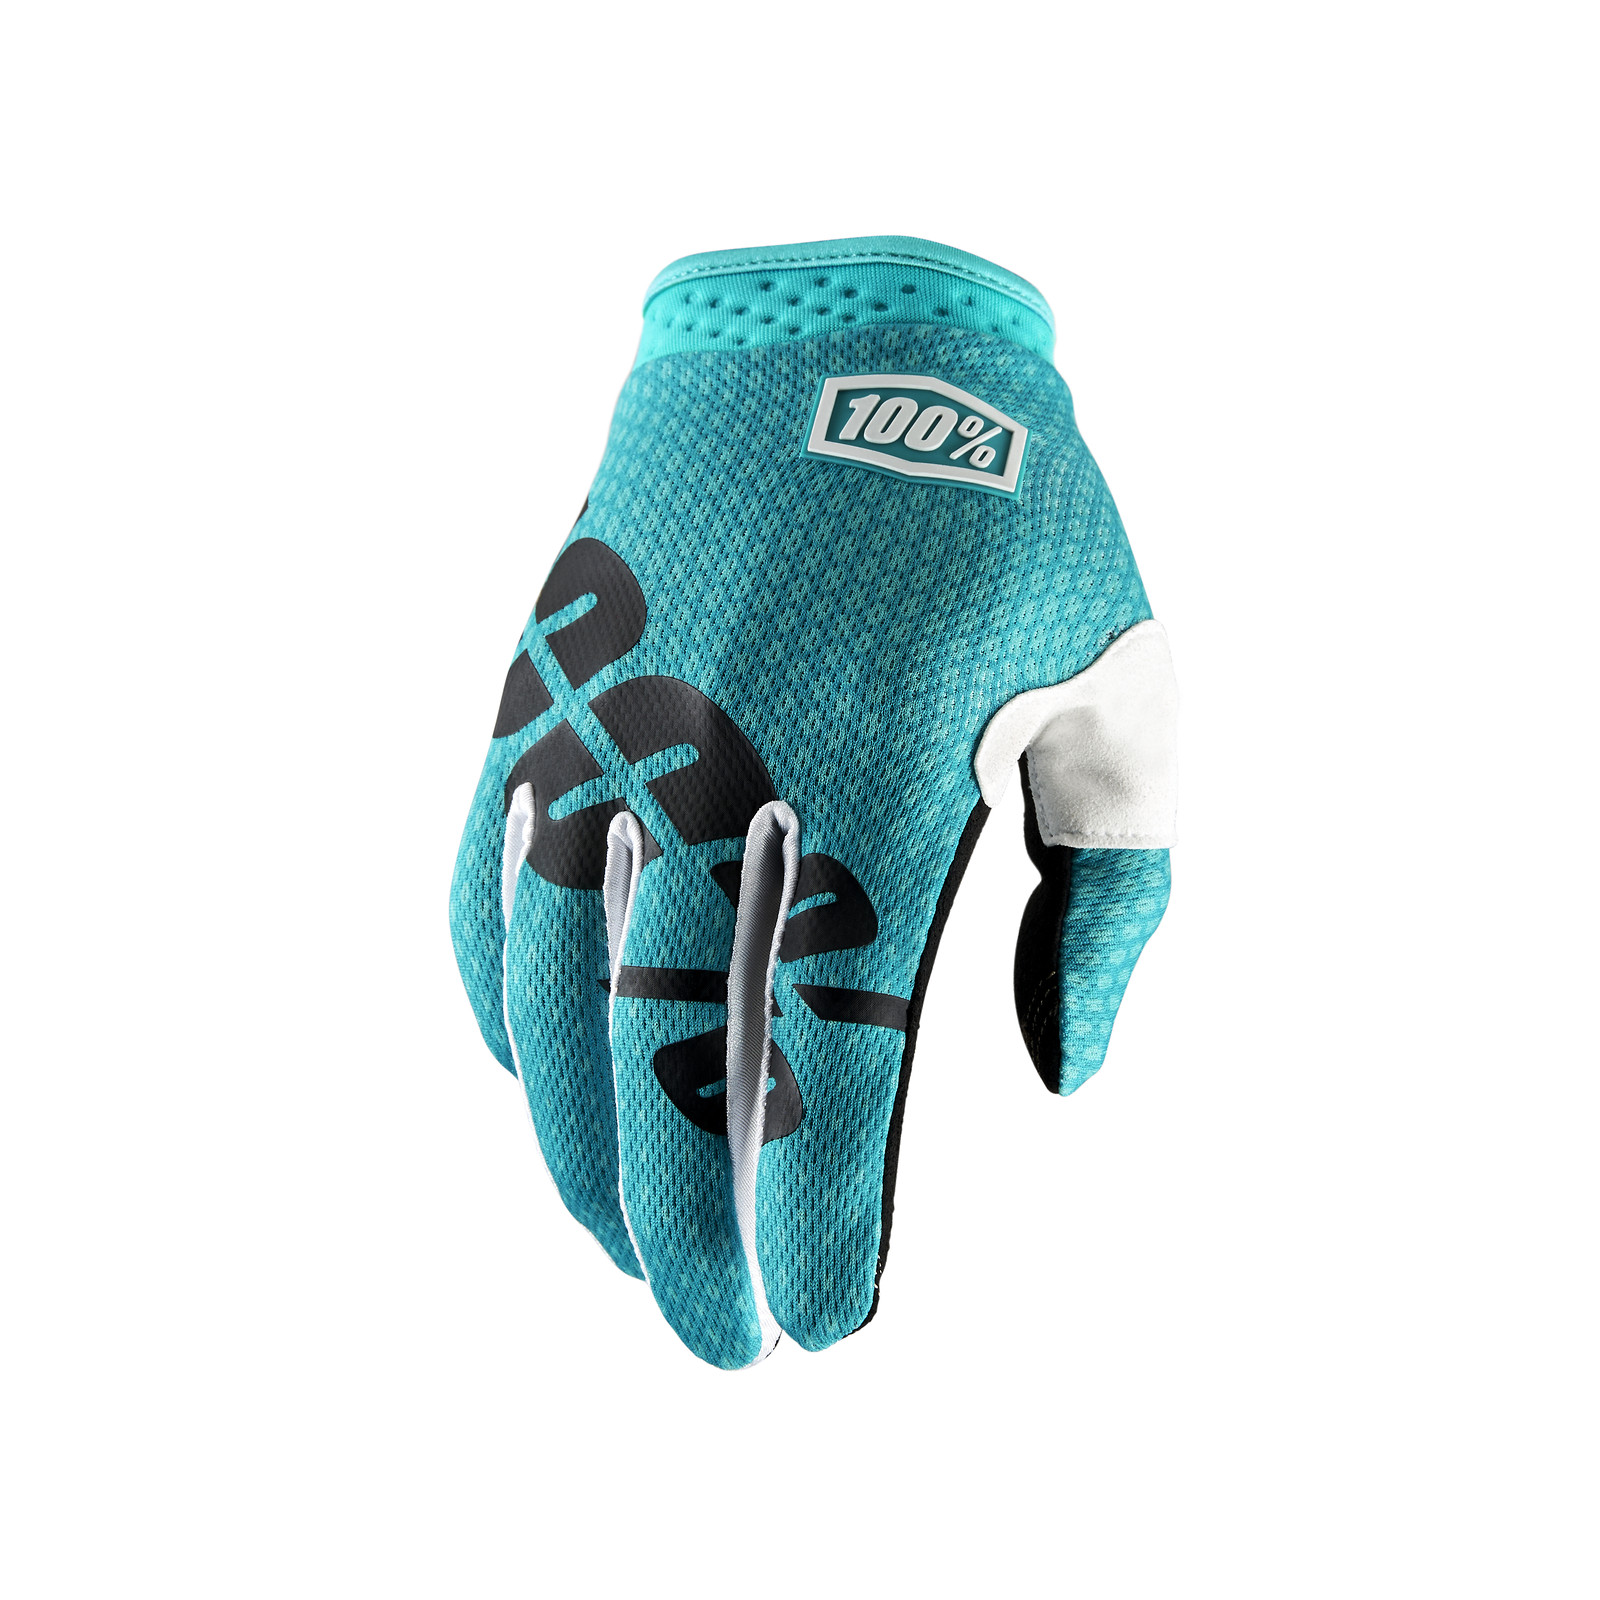 iTrack Glove - Teal - 100percent - Motocross Pictures - Vital MX